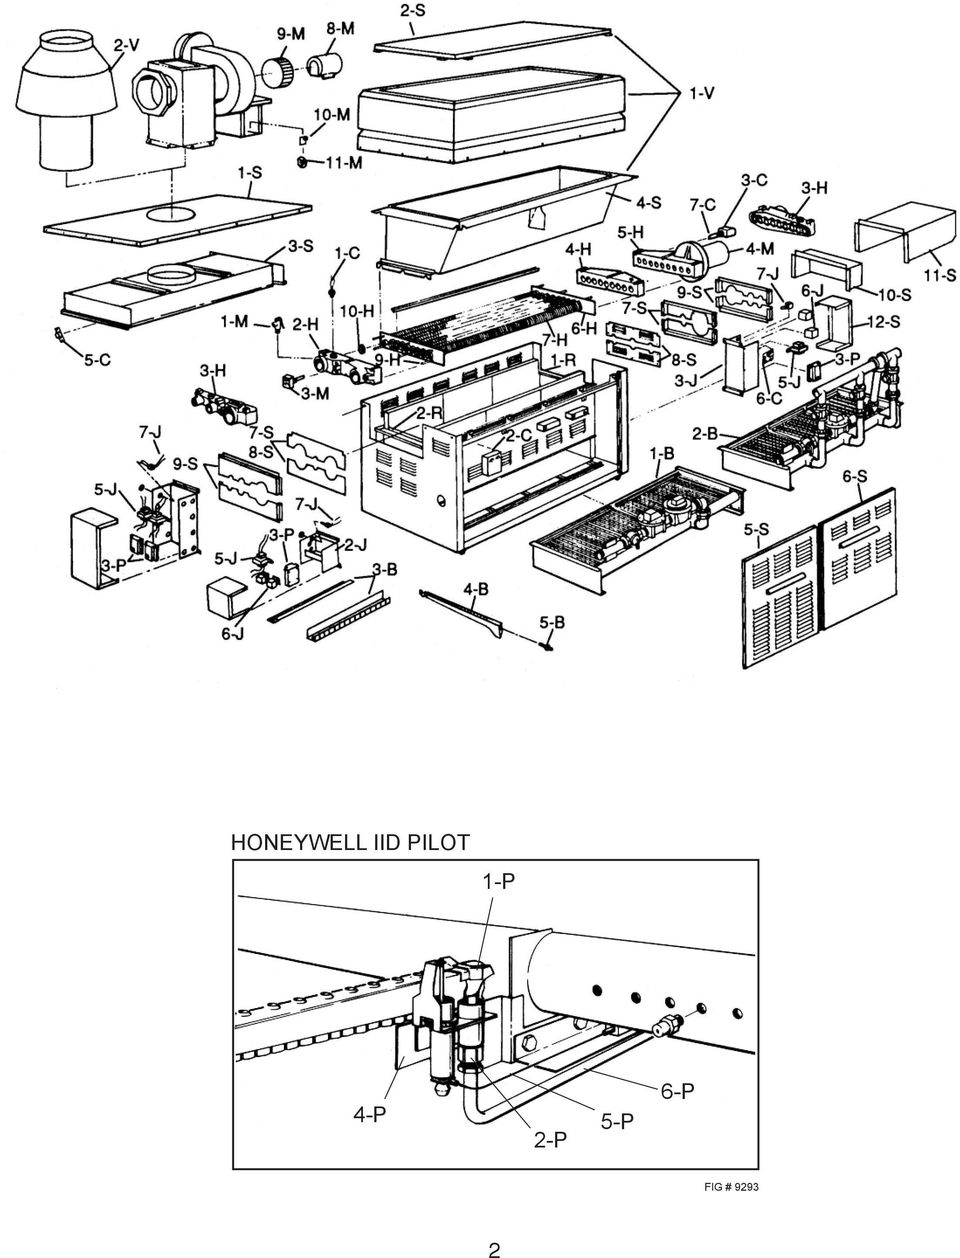 Raypak Replacement Parts Pdf Iid Wiring Diagram 1 P 4 5